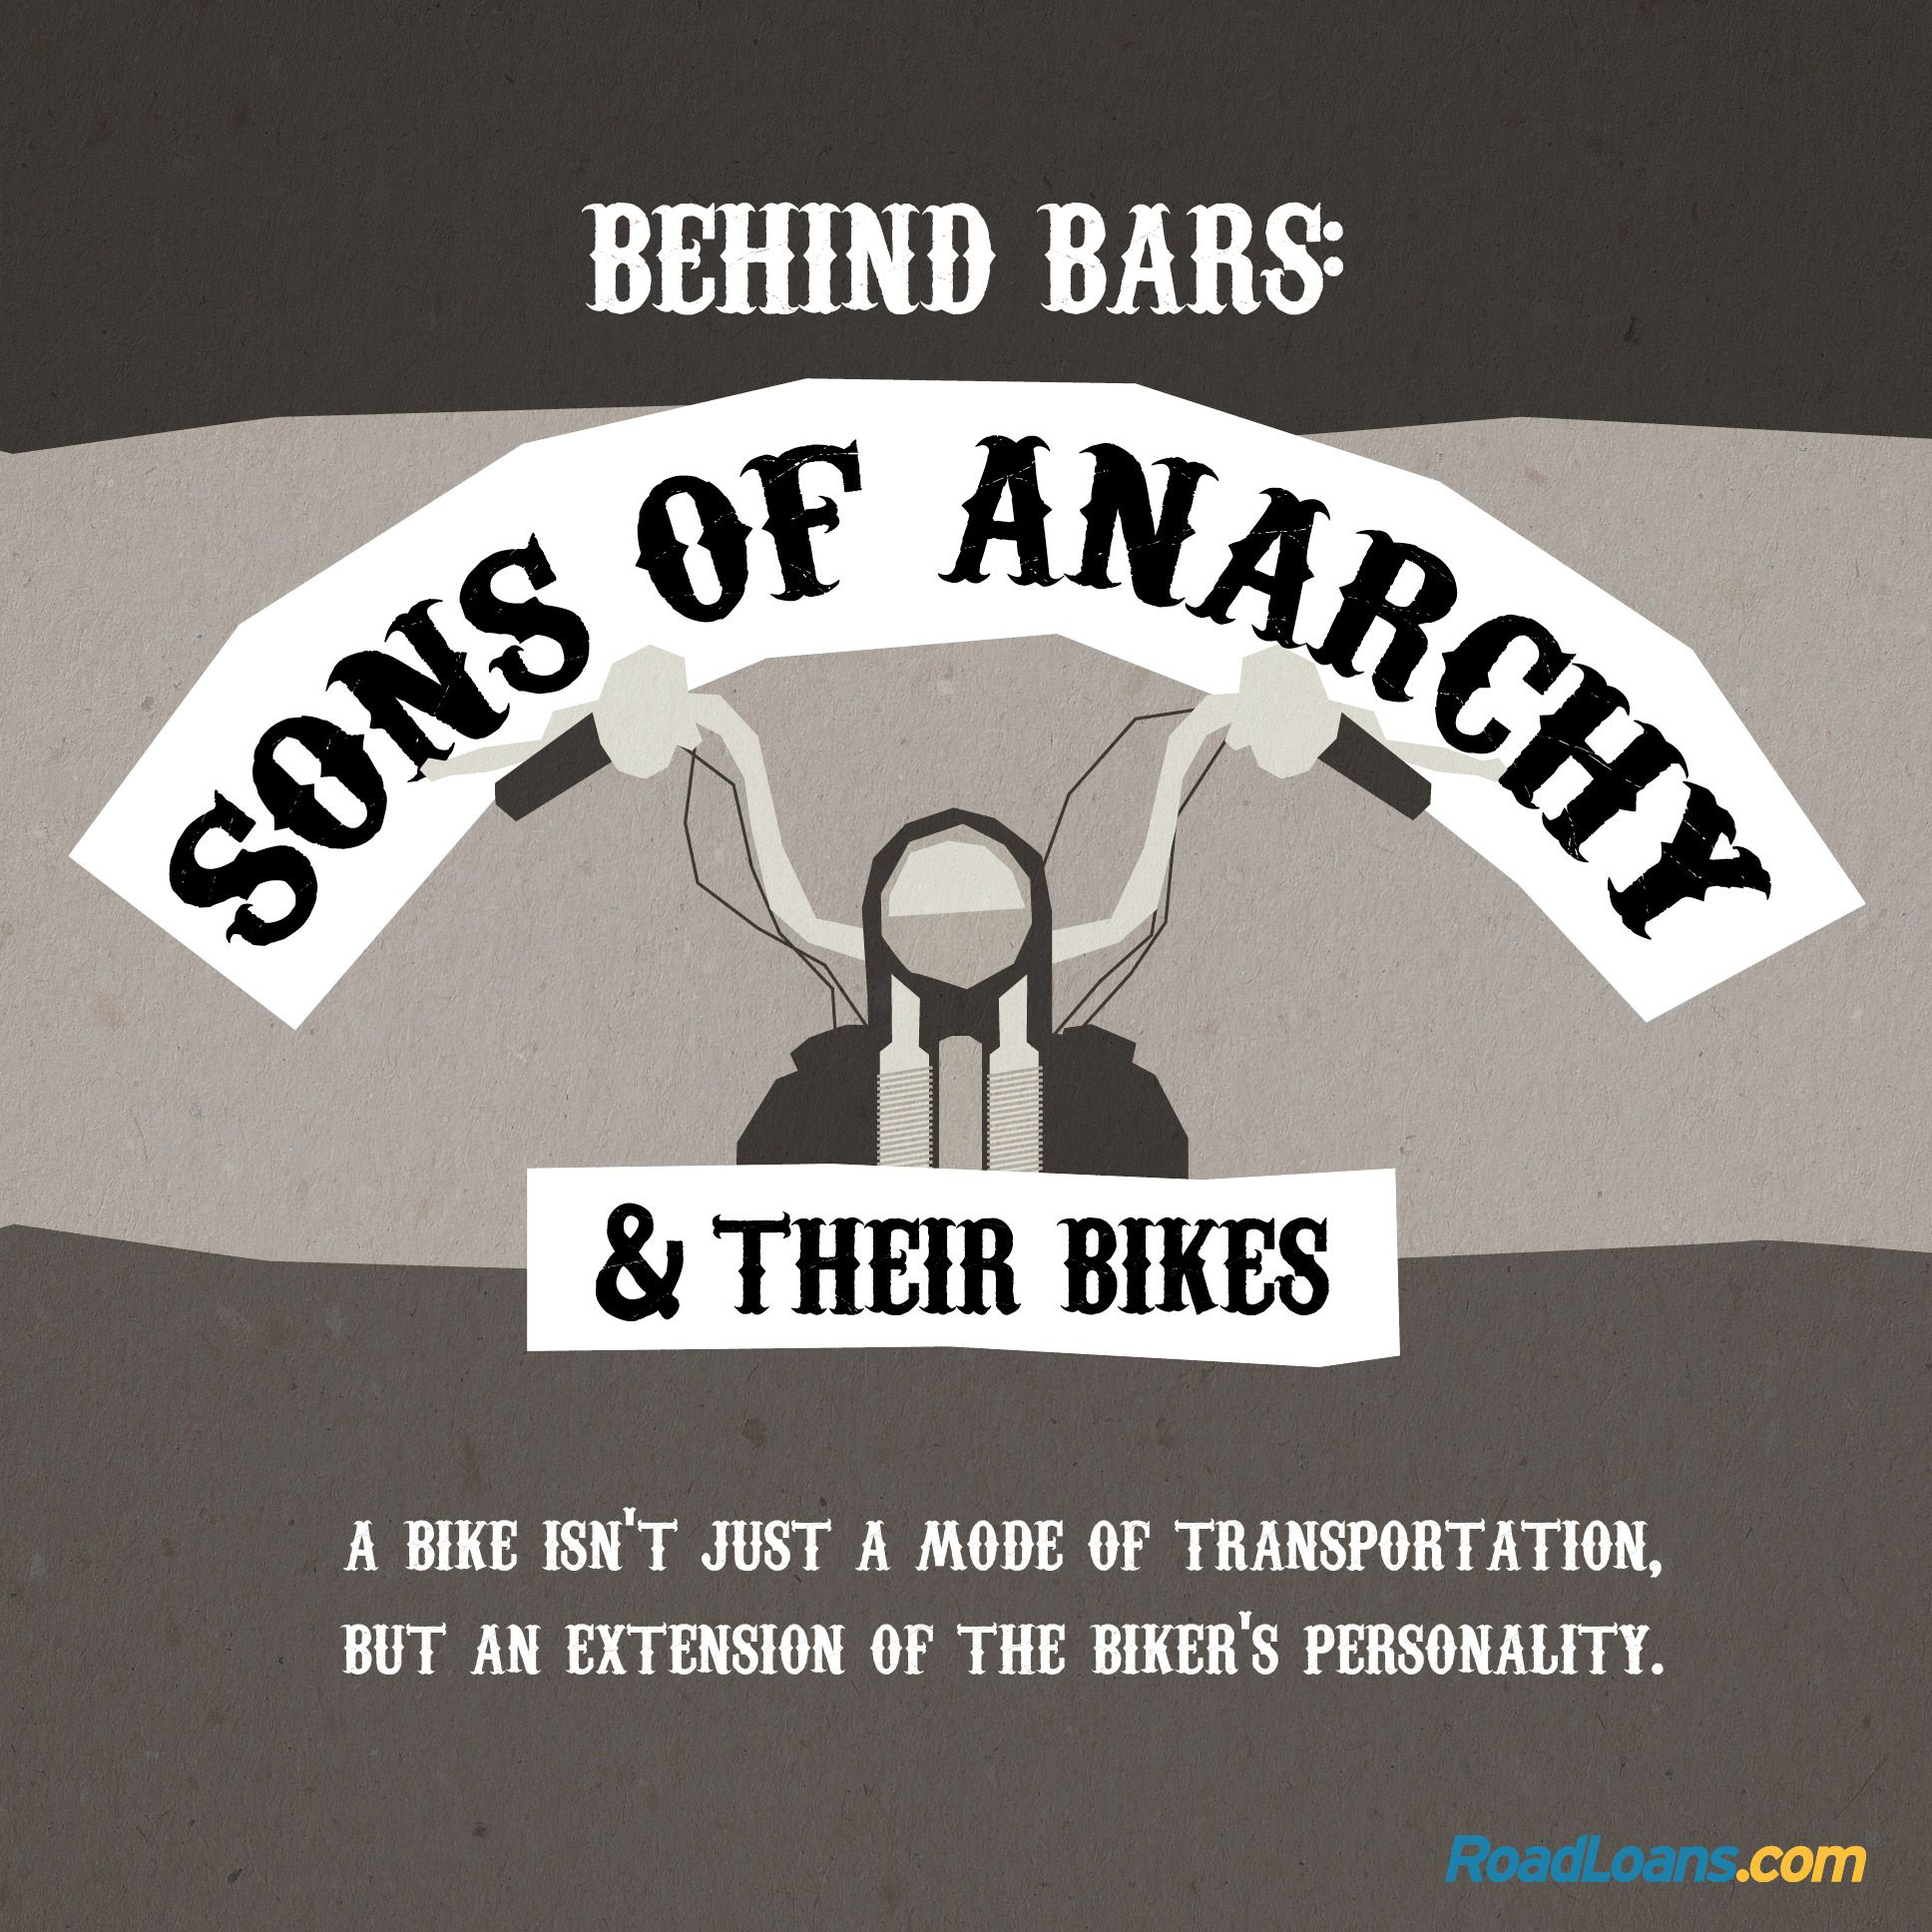 7 Behind Bars The Bikes From Sons Of Anarchy Ideas Sons Of Anarchy Anarchy Sons